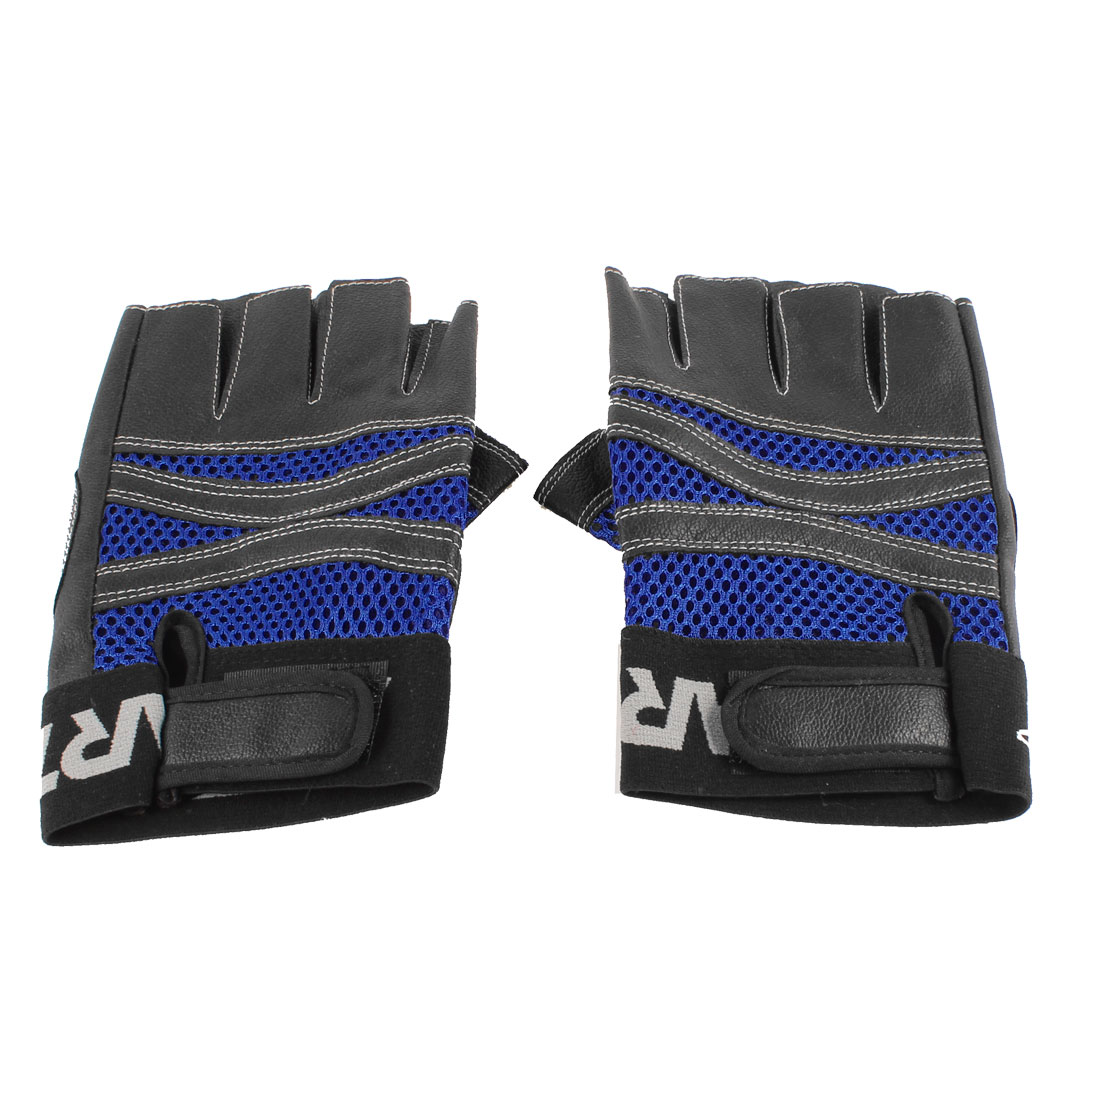 Pair Man Black Blue Faux Leather Mountain Bike Skiing Half Finger Gloves by Unique-Bargains